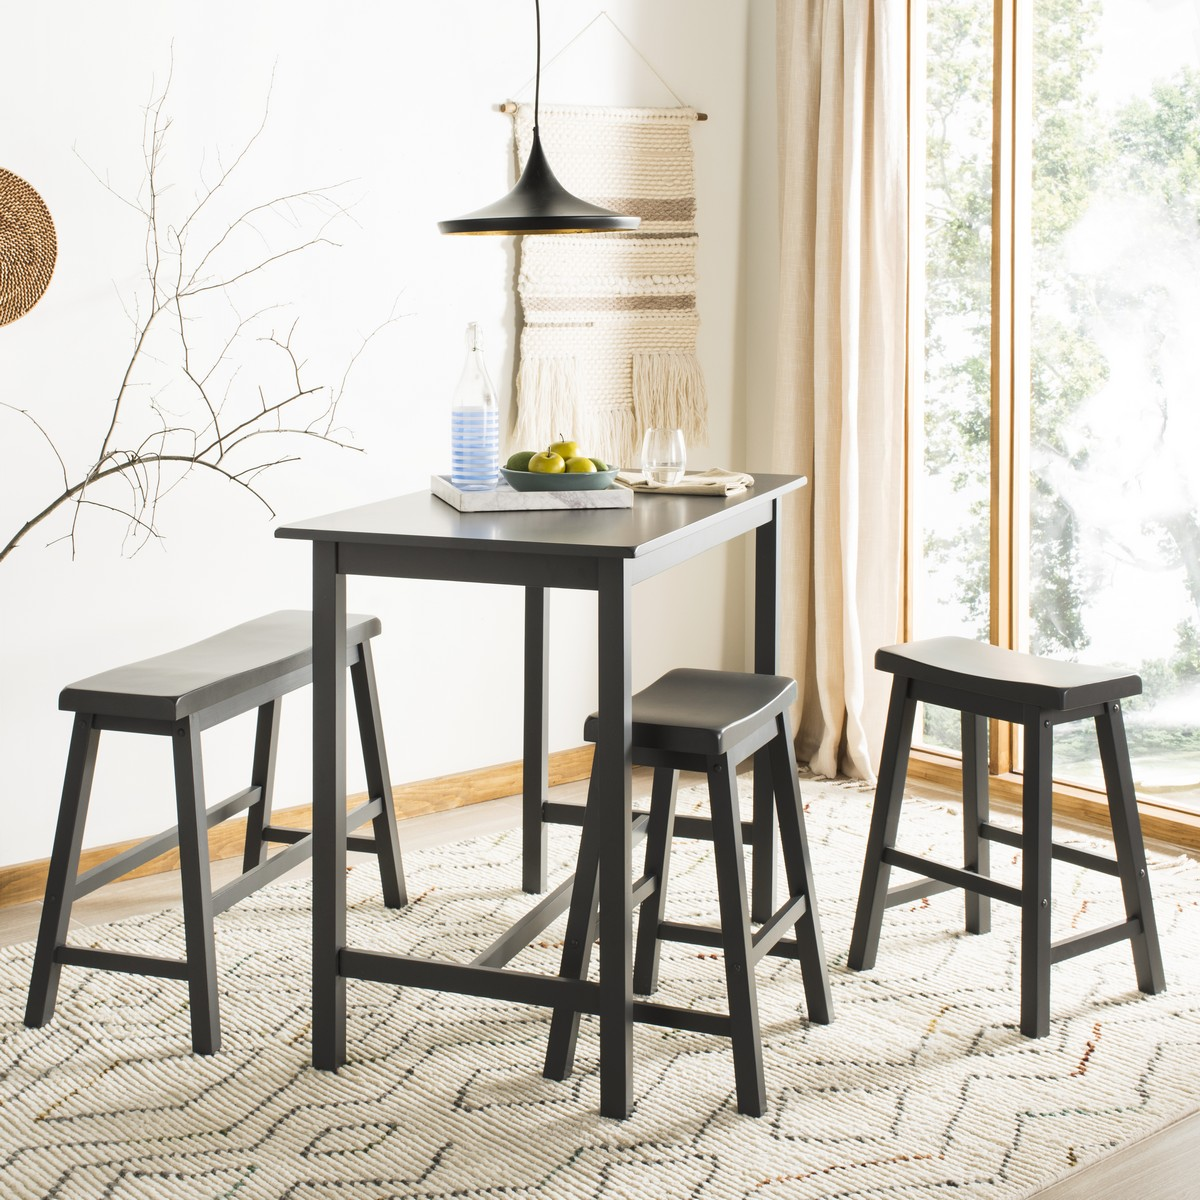 Enjoyable Amh8503C Dining Tables Furniture By Safavieh Home Interior And Landscaping Dextoversignezvosmurscom